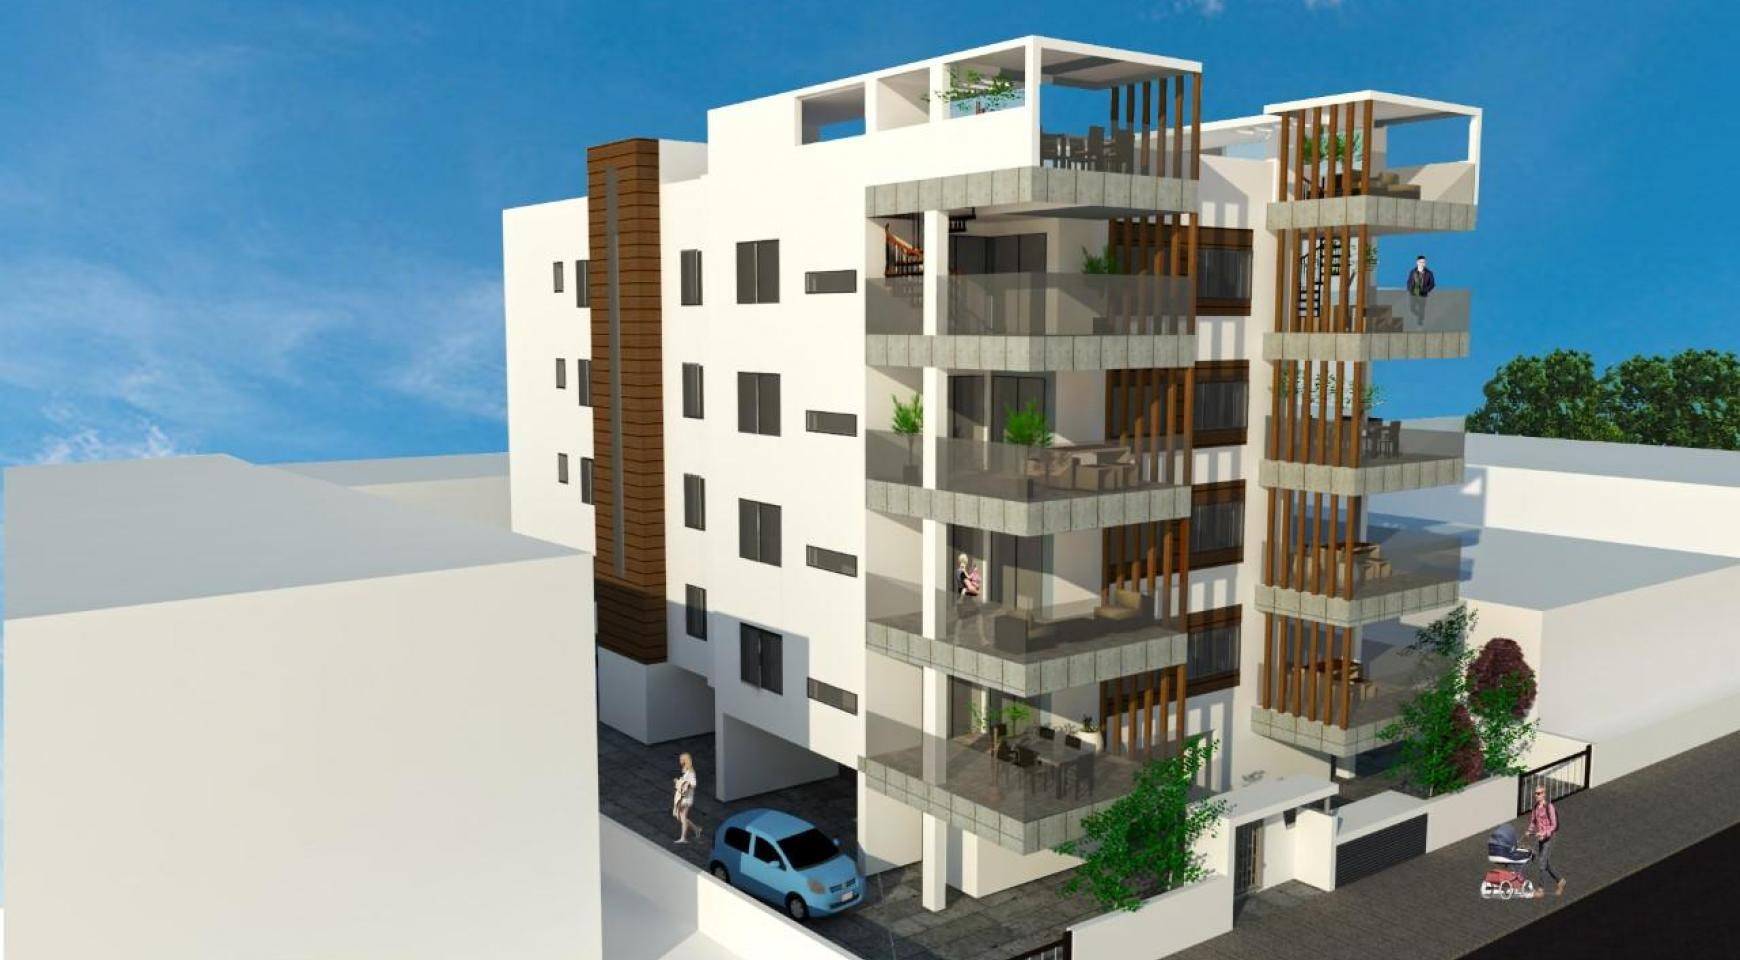 New 2 Bedroom Apartment with Roof Garden in a Contemporary Building in the Town Centre - 2